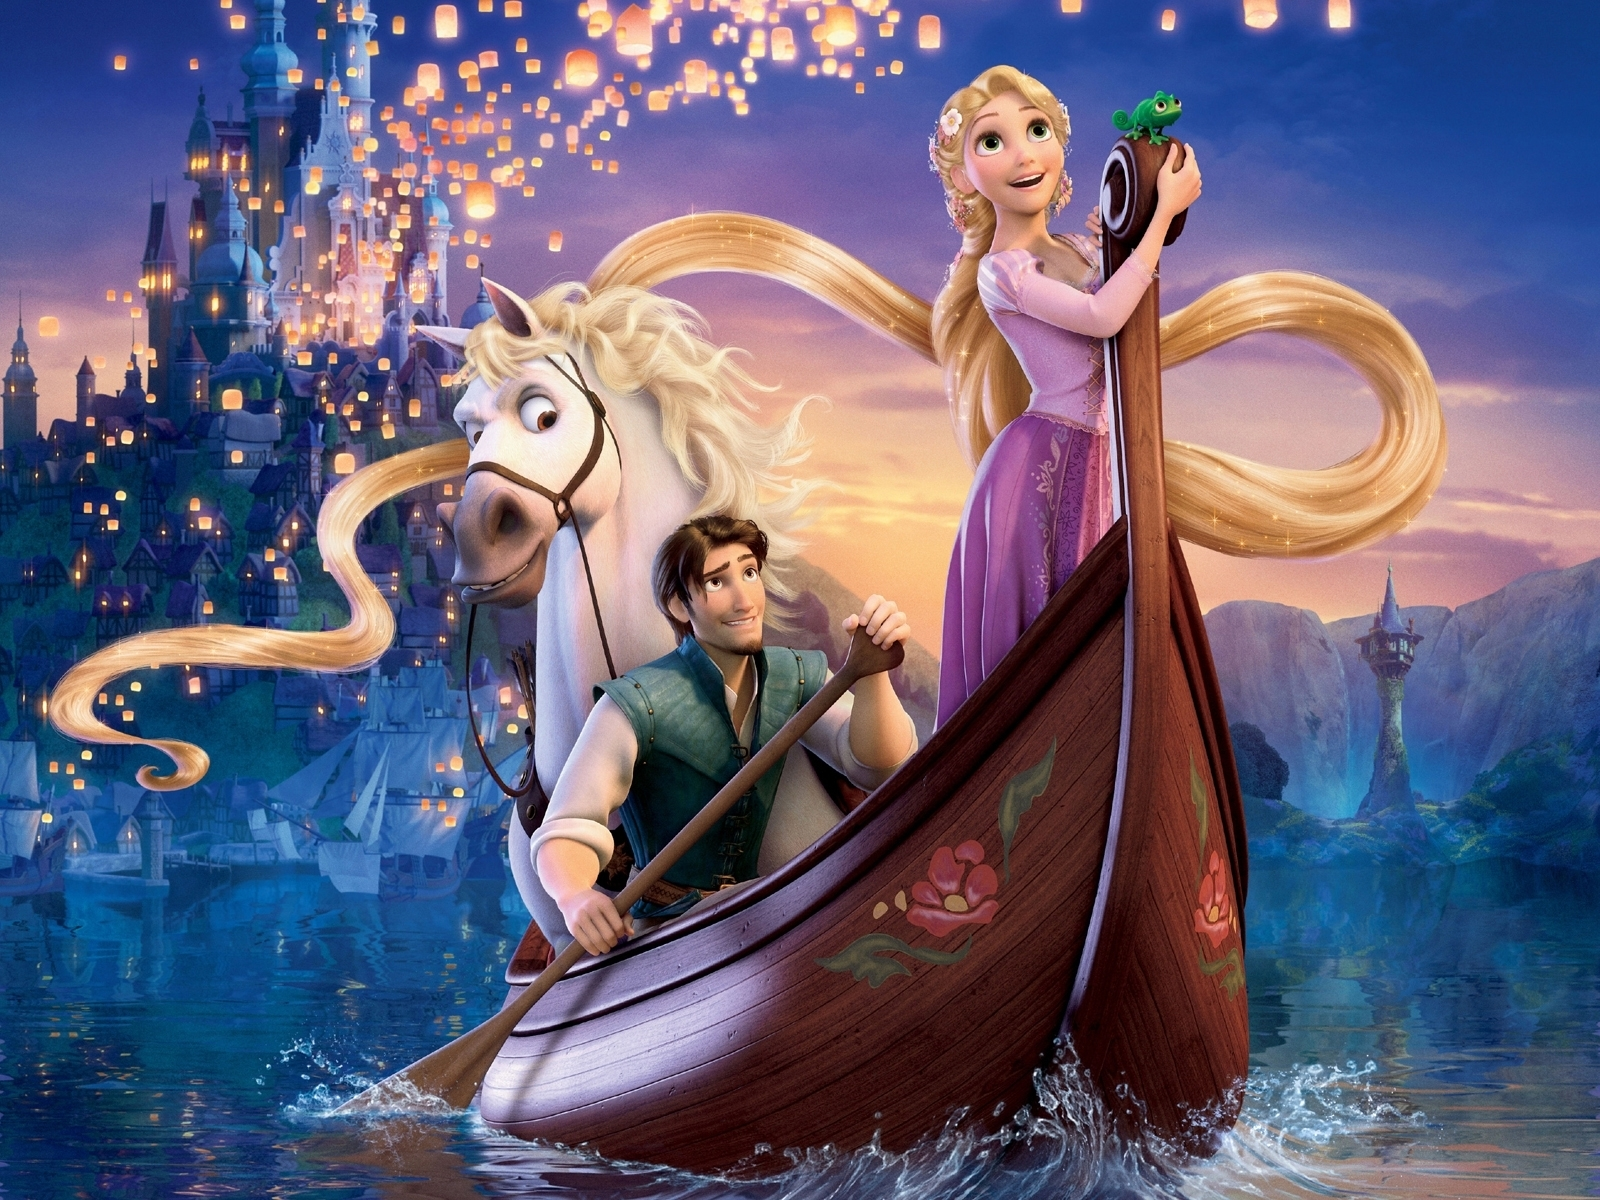 Tangled Tangled Wallpaper 18015052 Fanpop